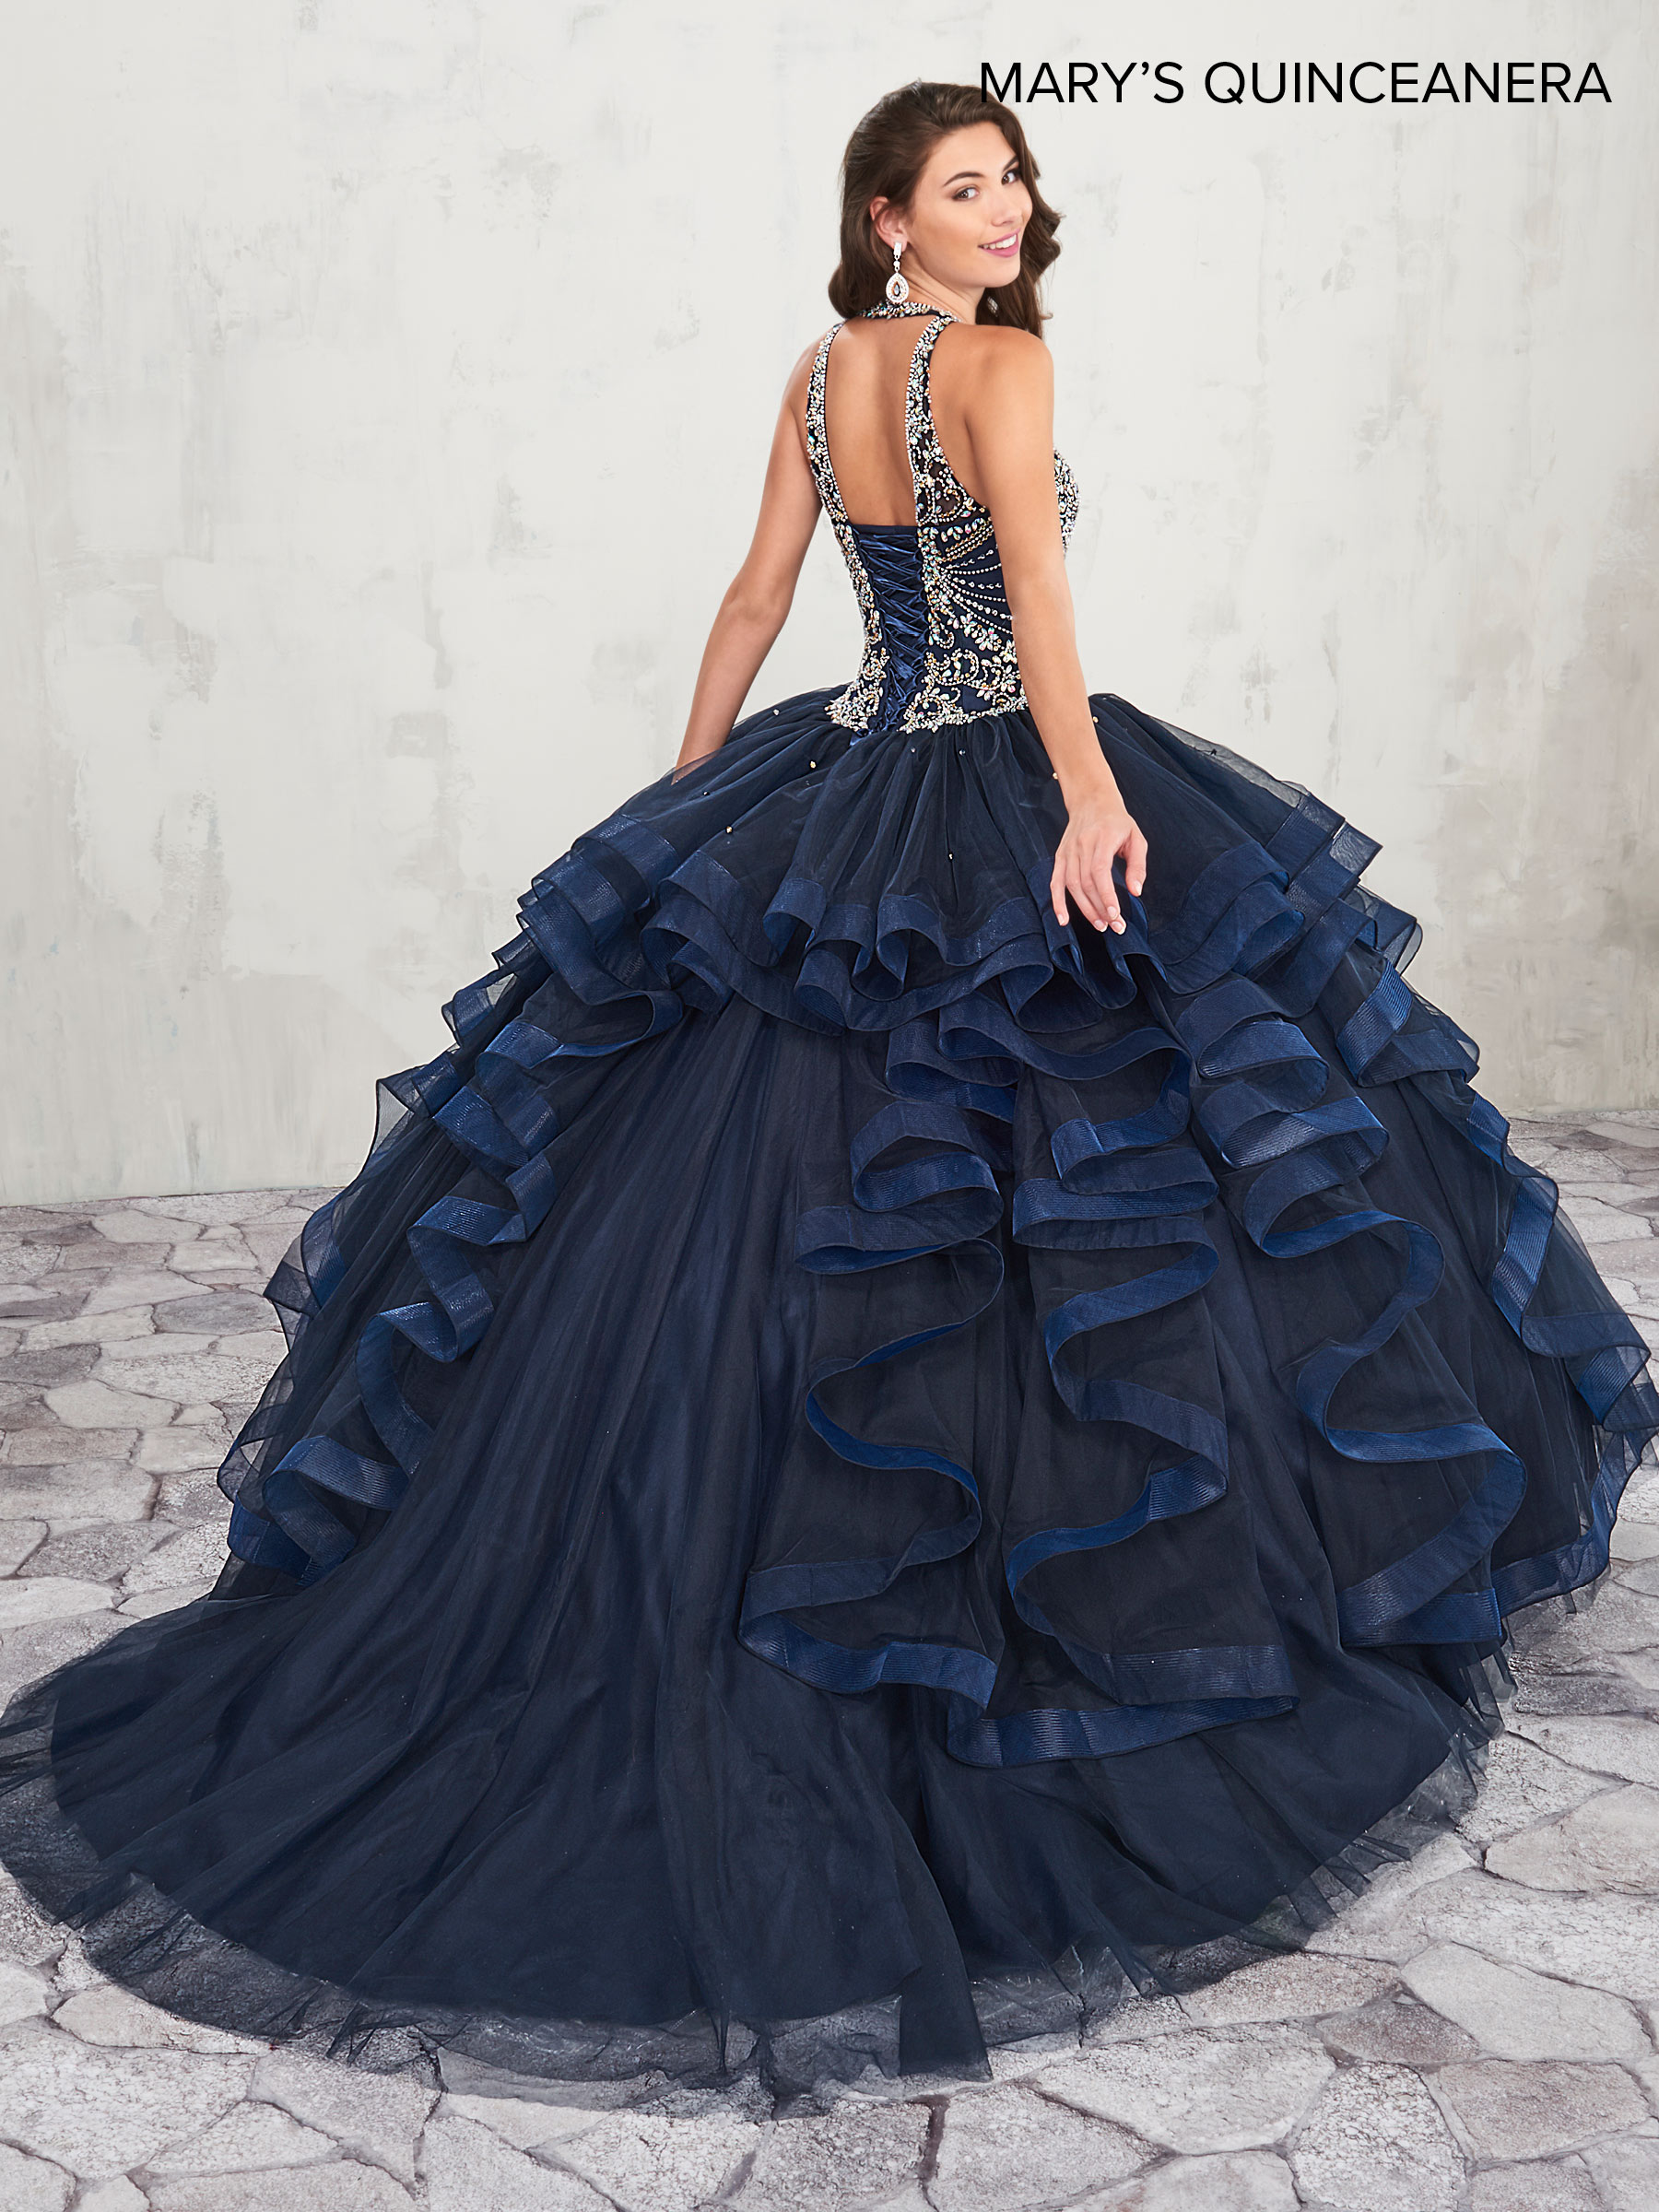 Marys Quinceanera Dresses | Mary's Quinceanera | Style - MQ2011